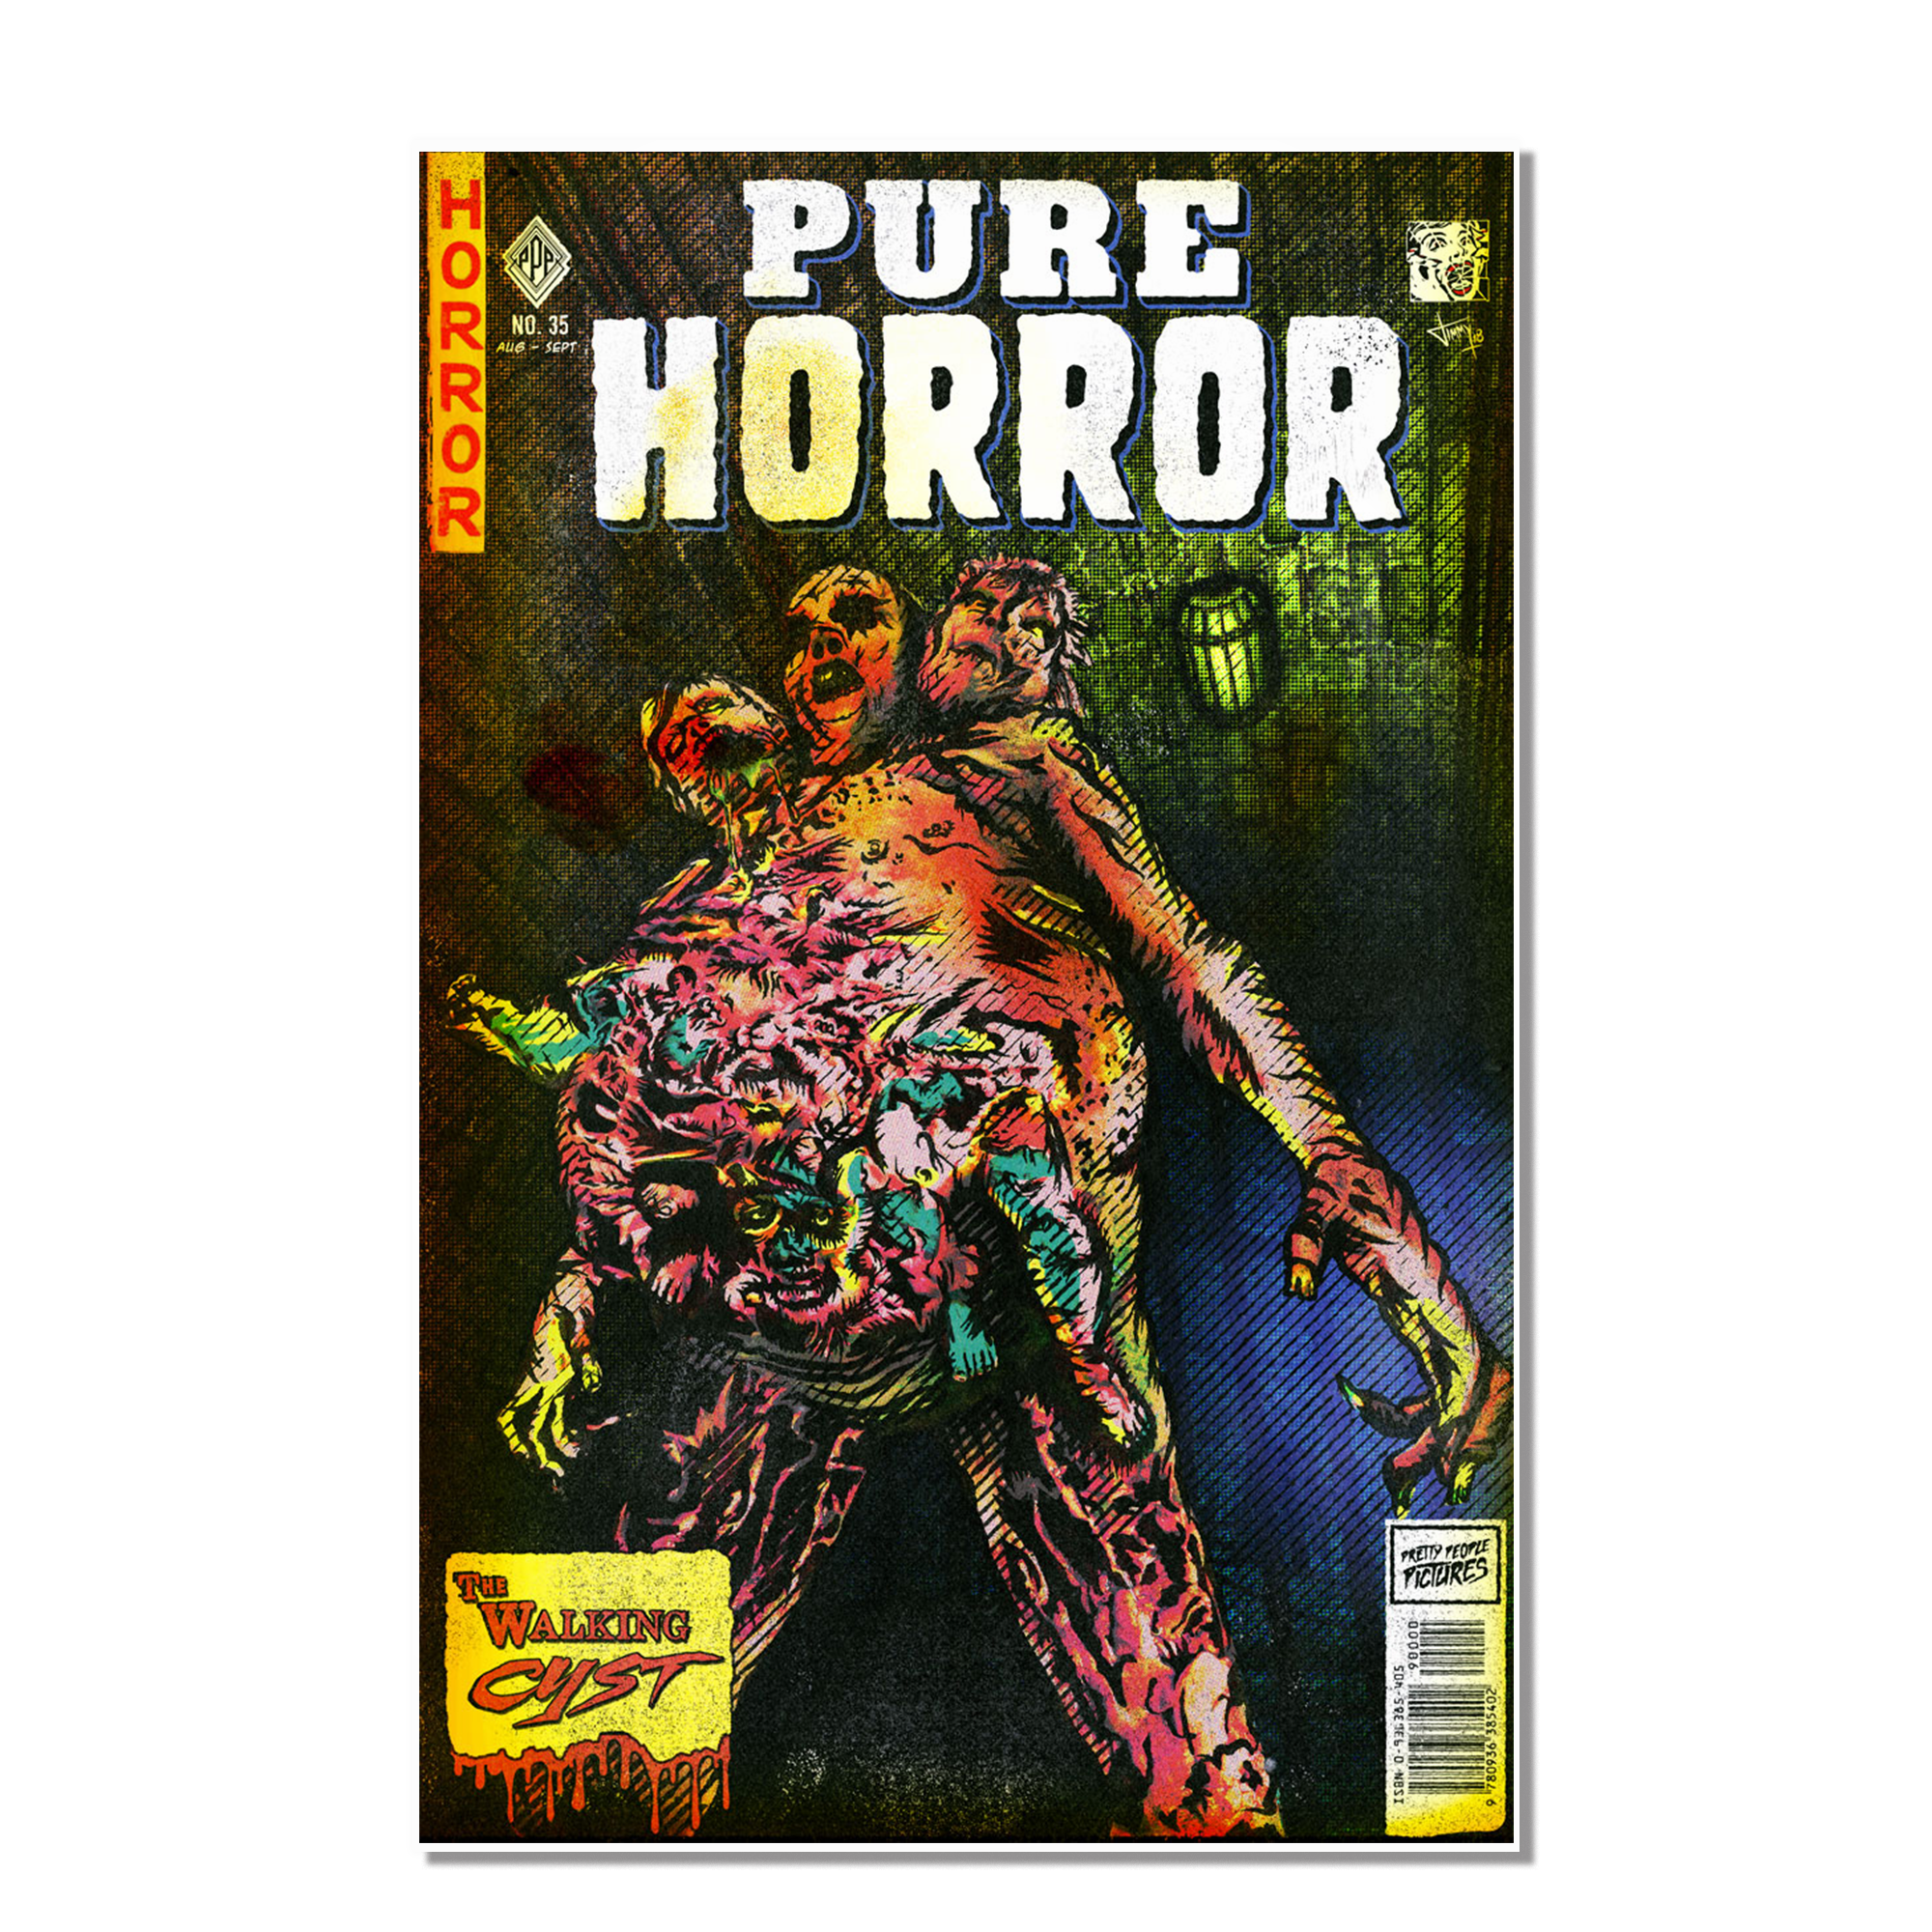 PureHorror-COVER-06-ALPHA.png